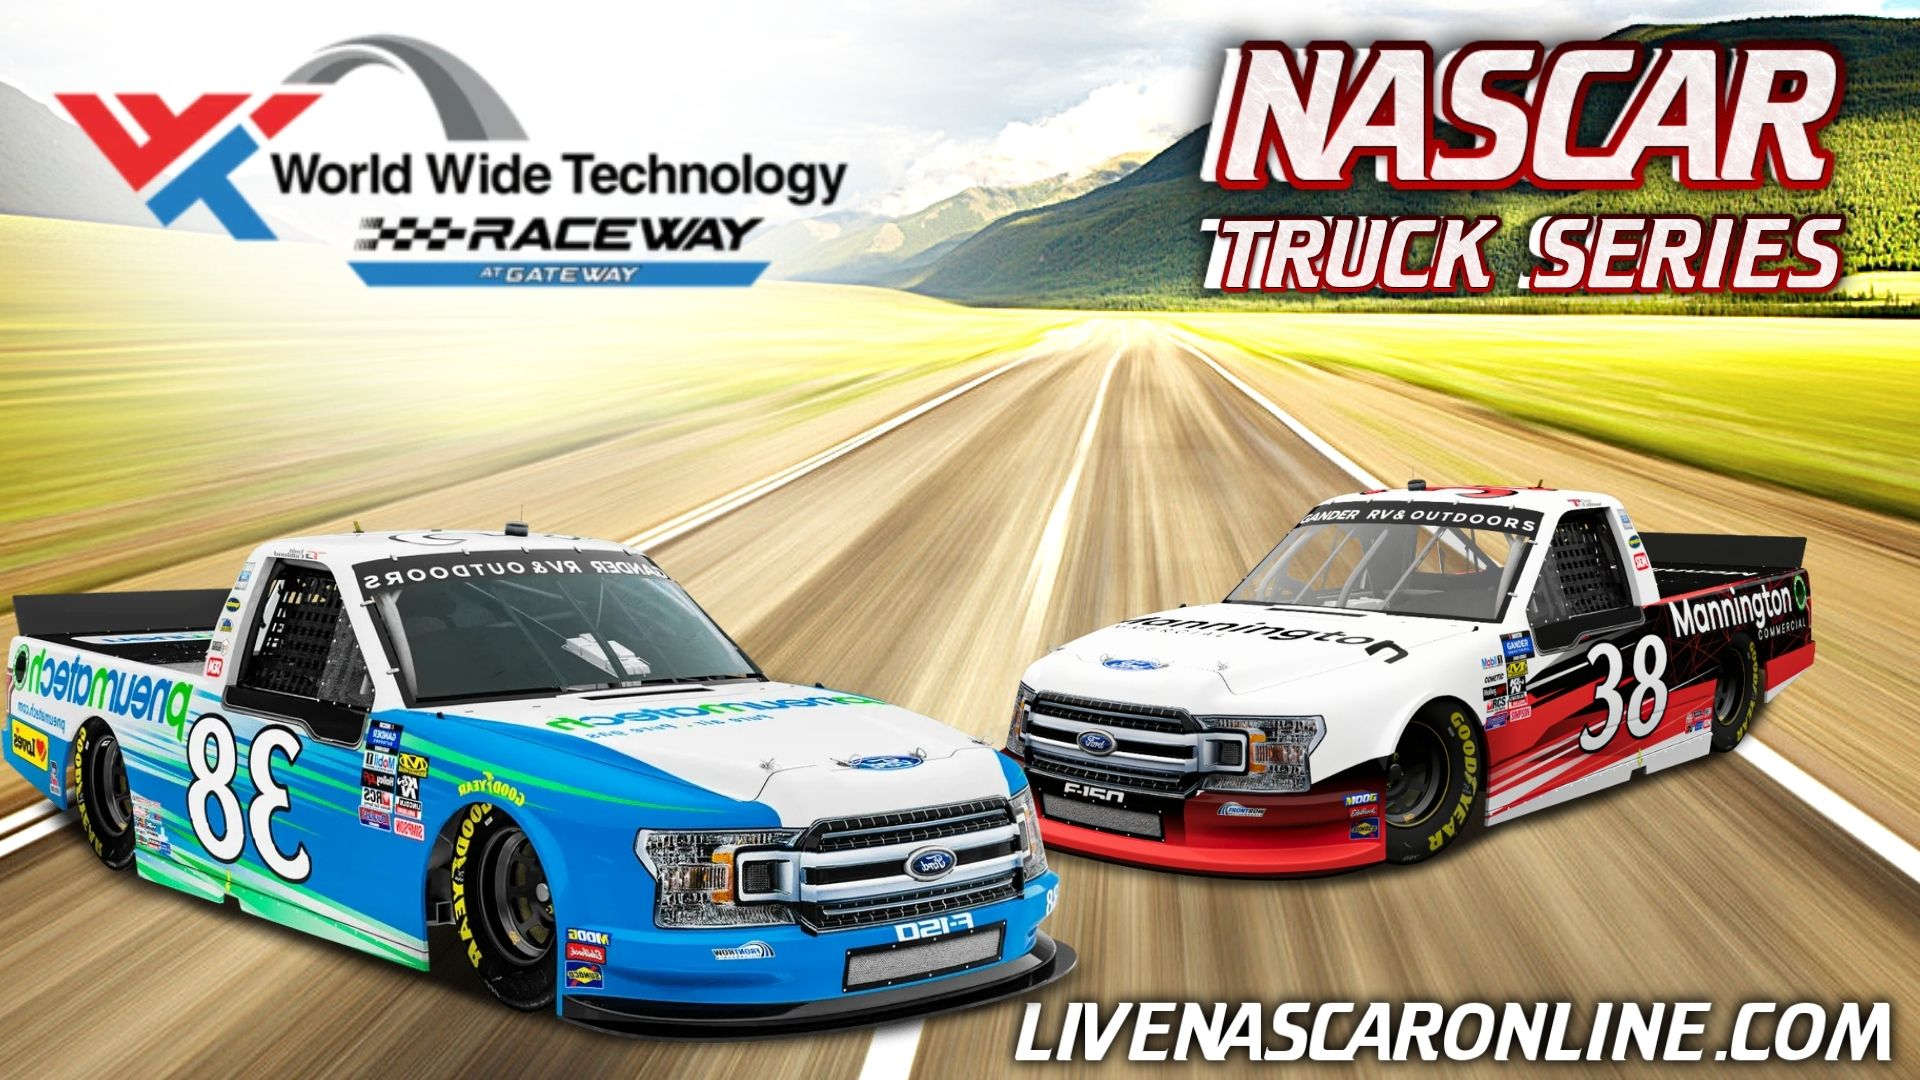 NASCAR Truck Race at World Wide Technology Live Stream 2021